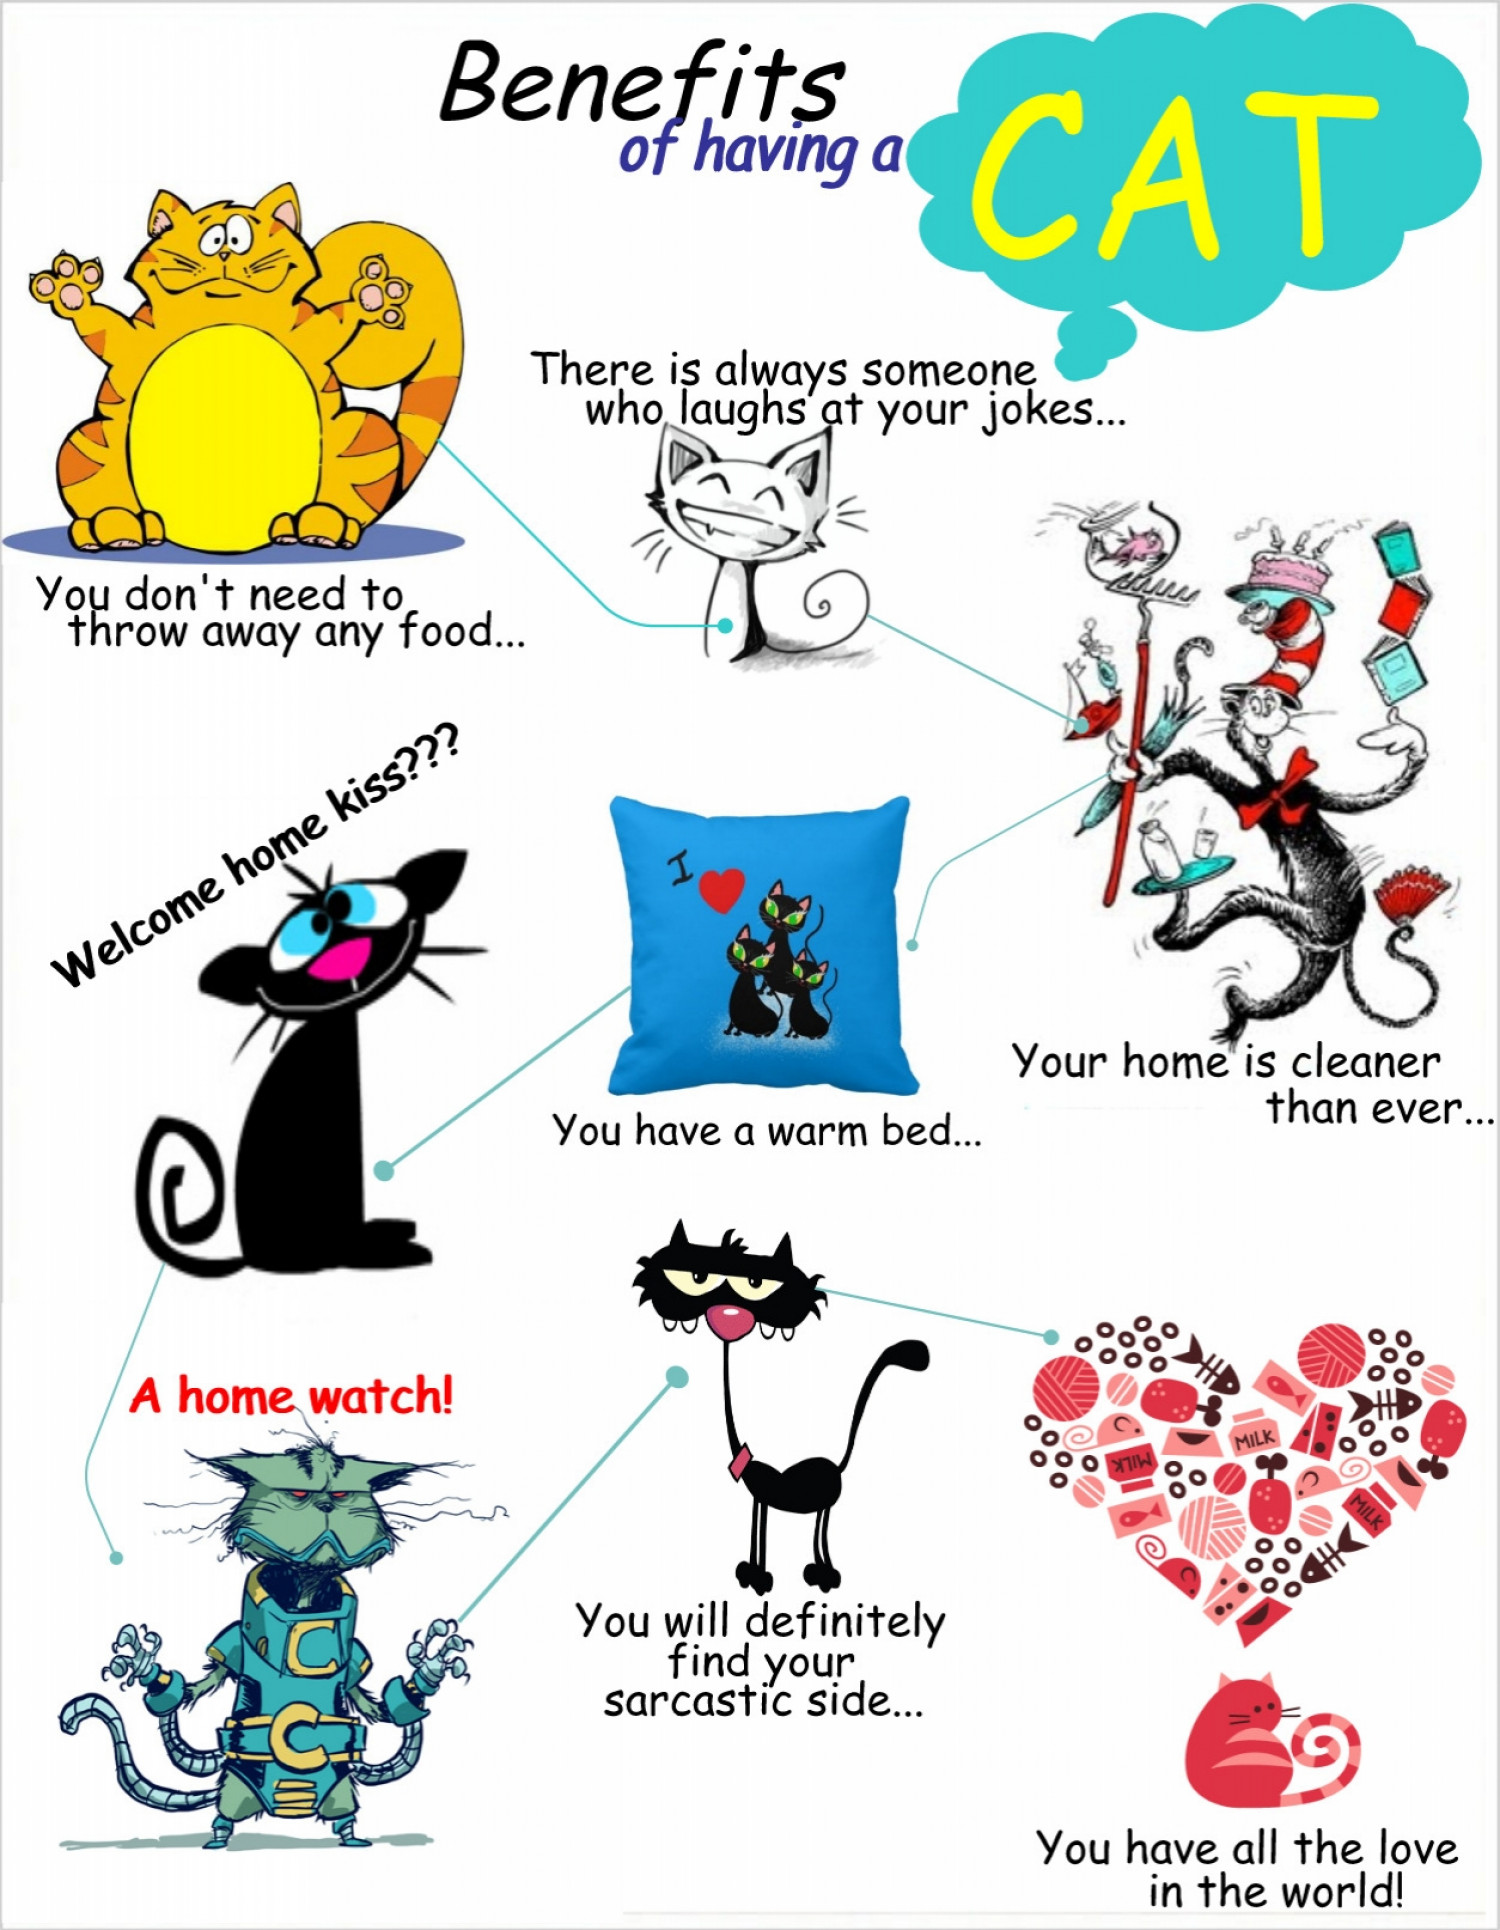 Benefits of Having a Cat Infographic